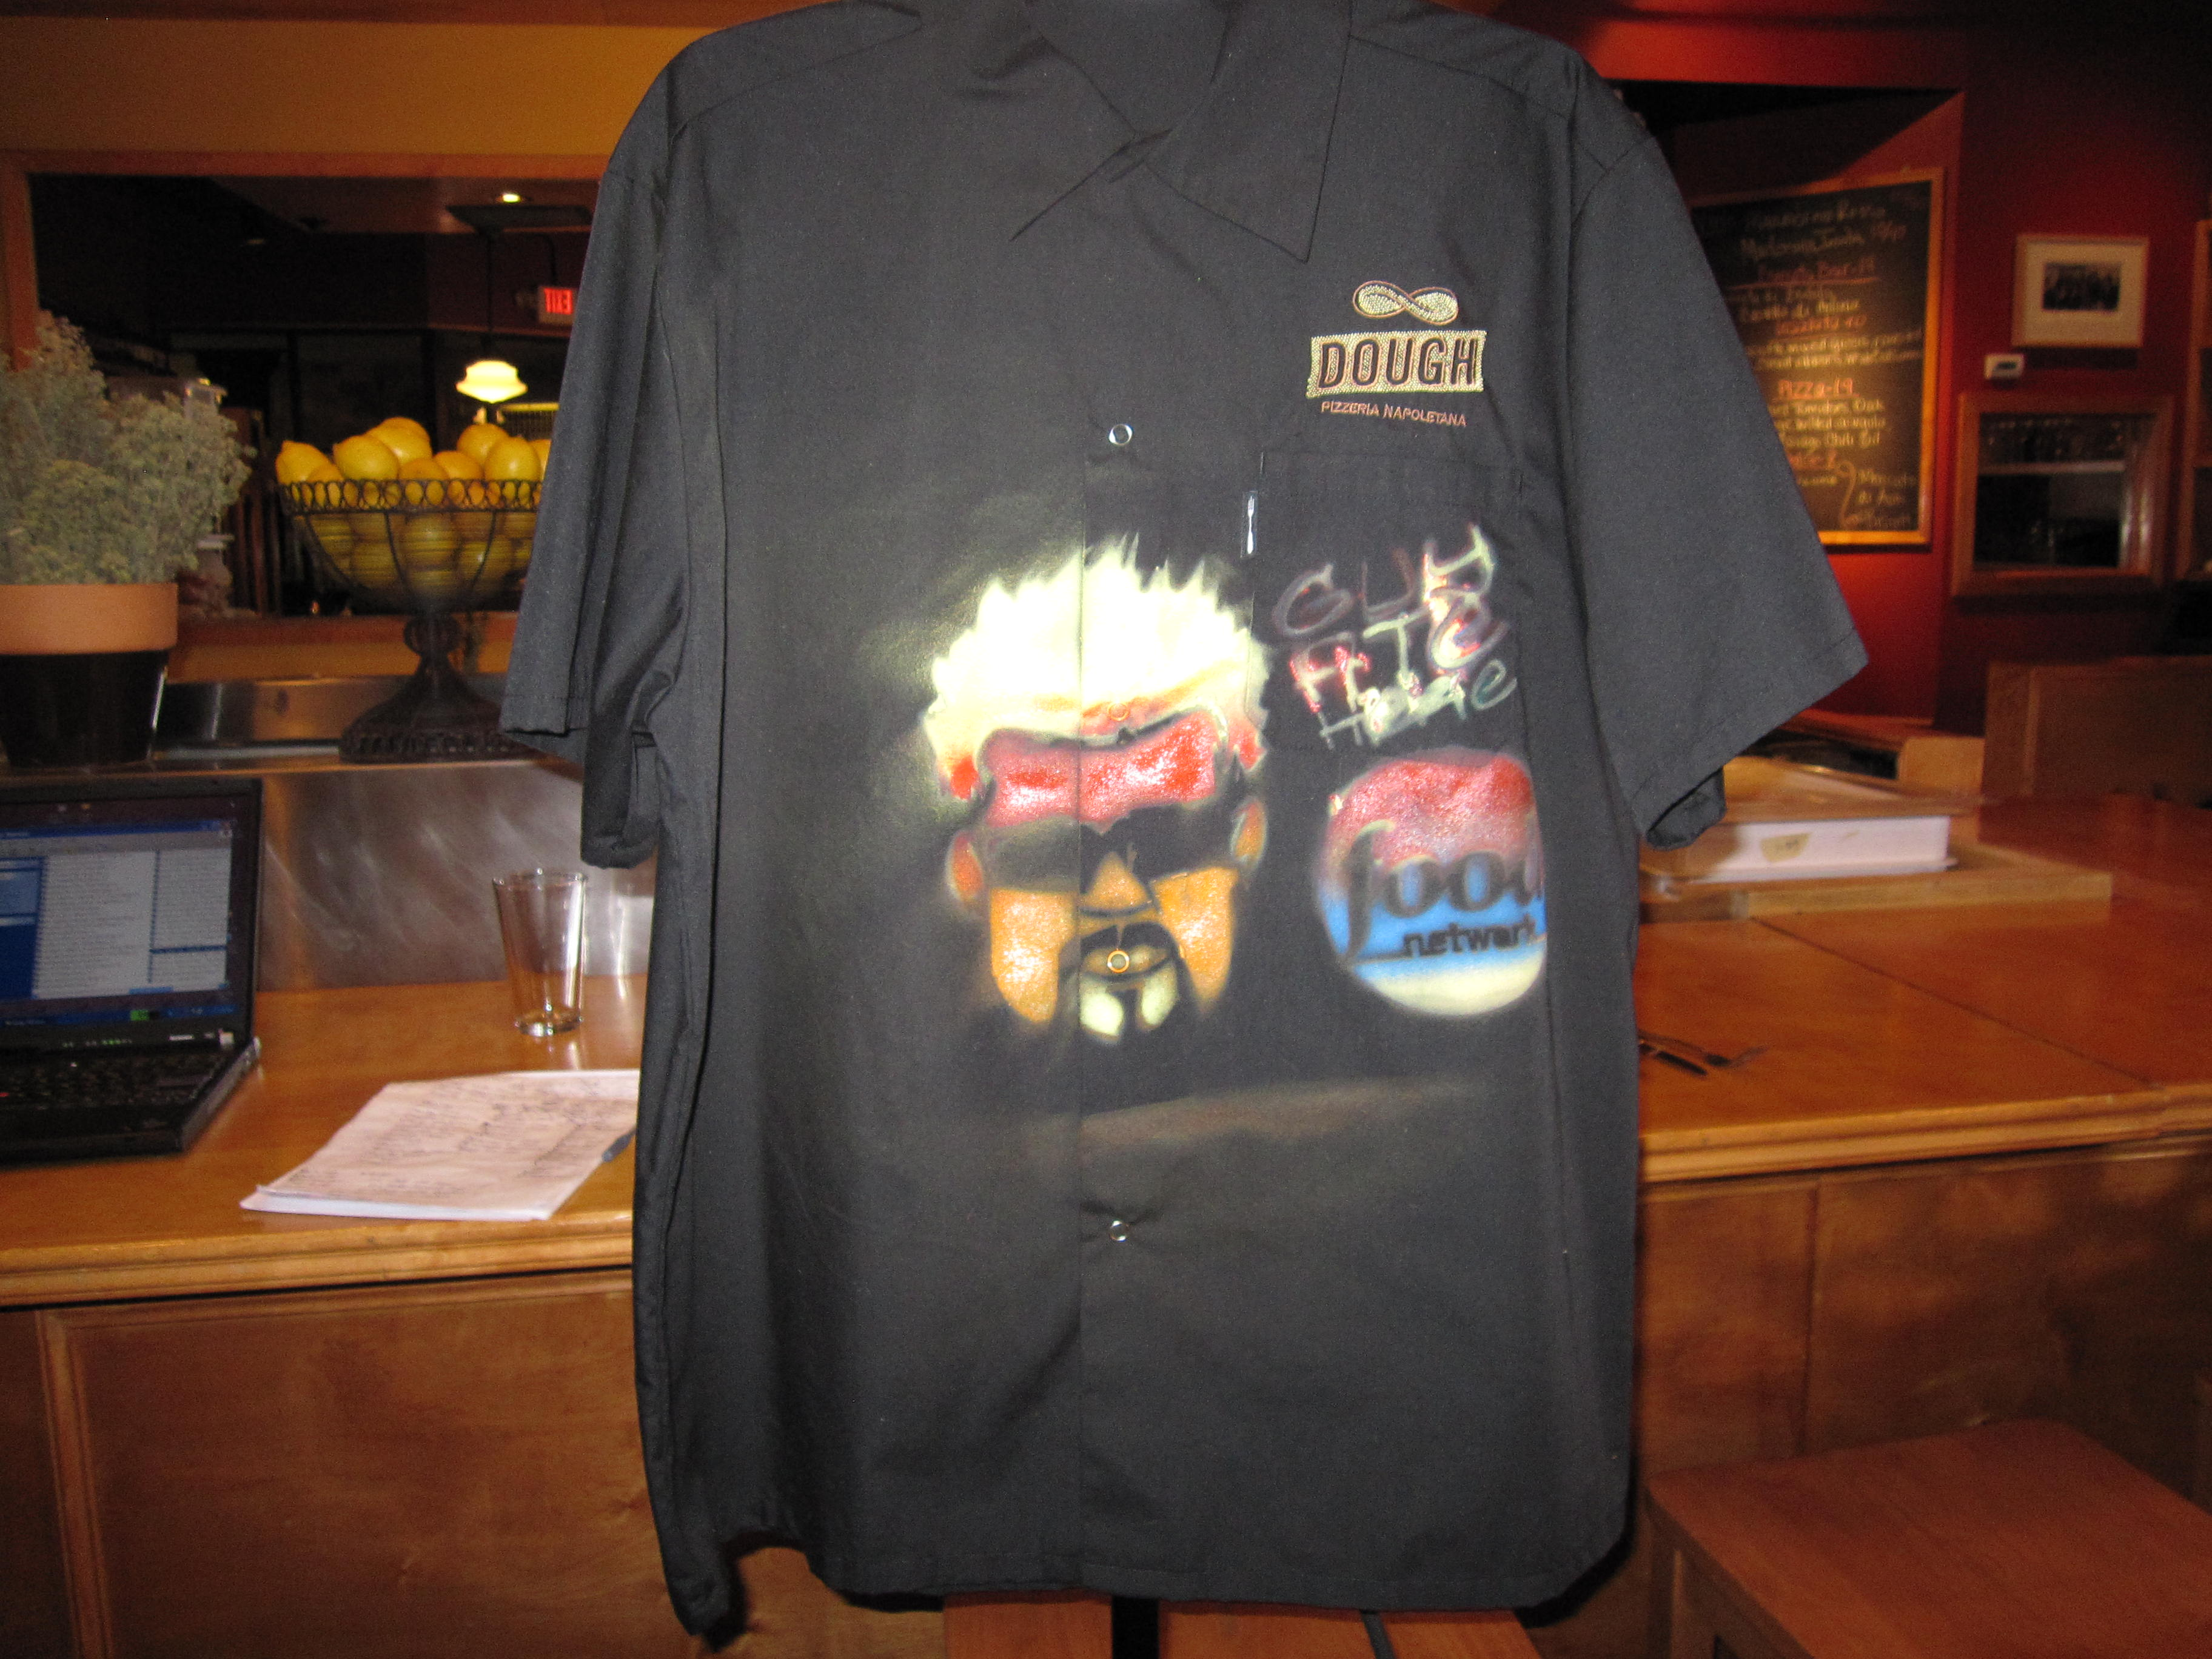 Guy Fieri Diners Drive Ins And Dives Dough Pizzeria Napoletana